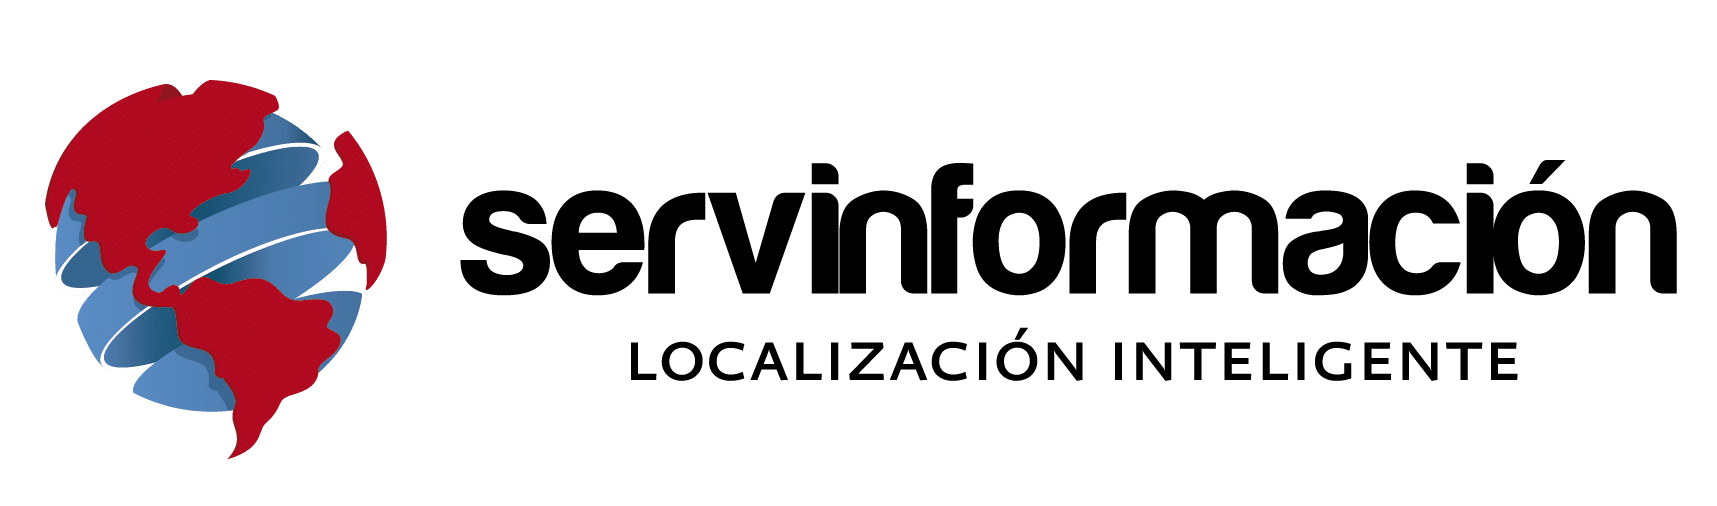 Servinformación